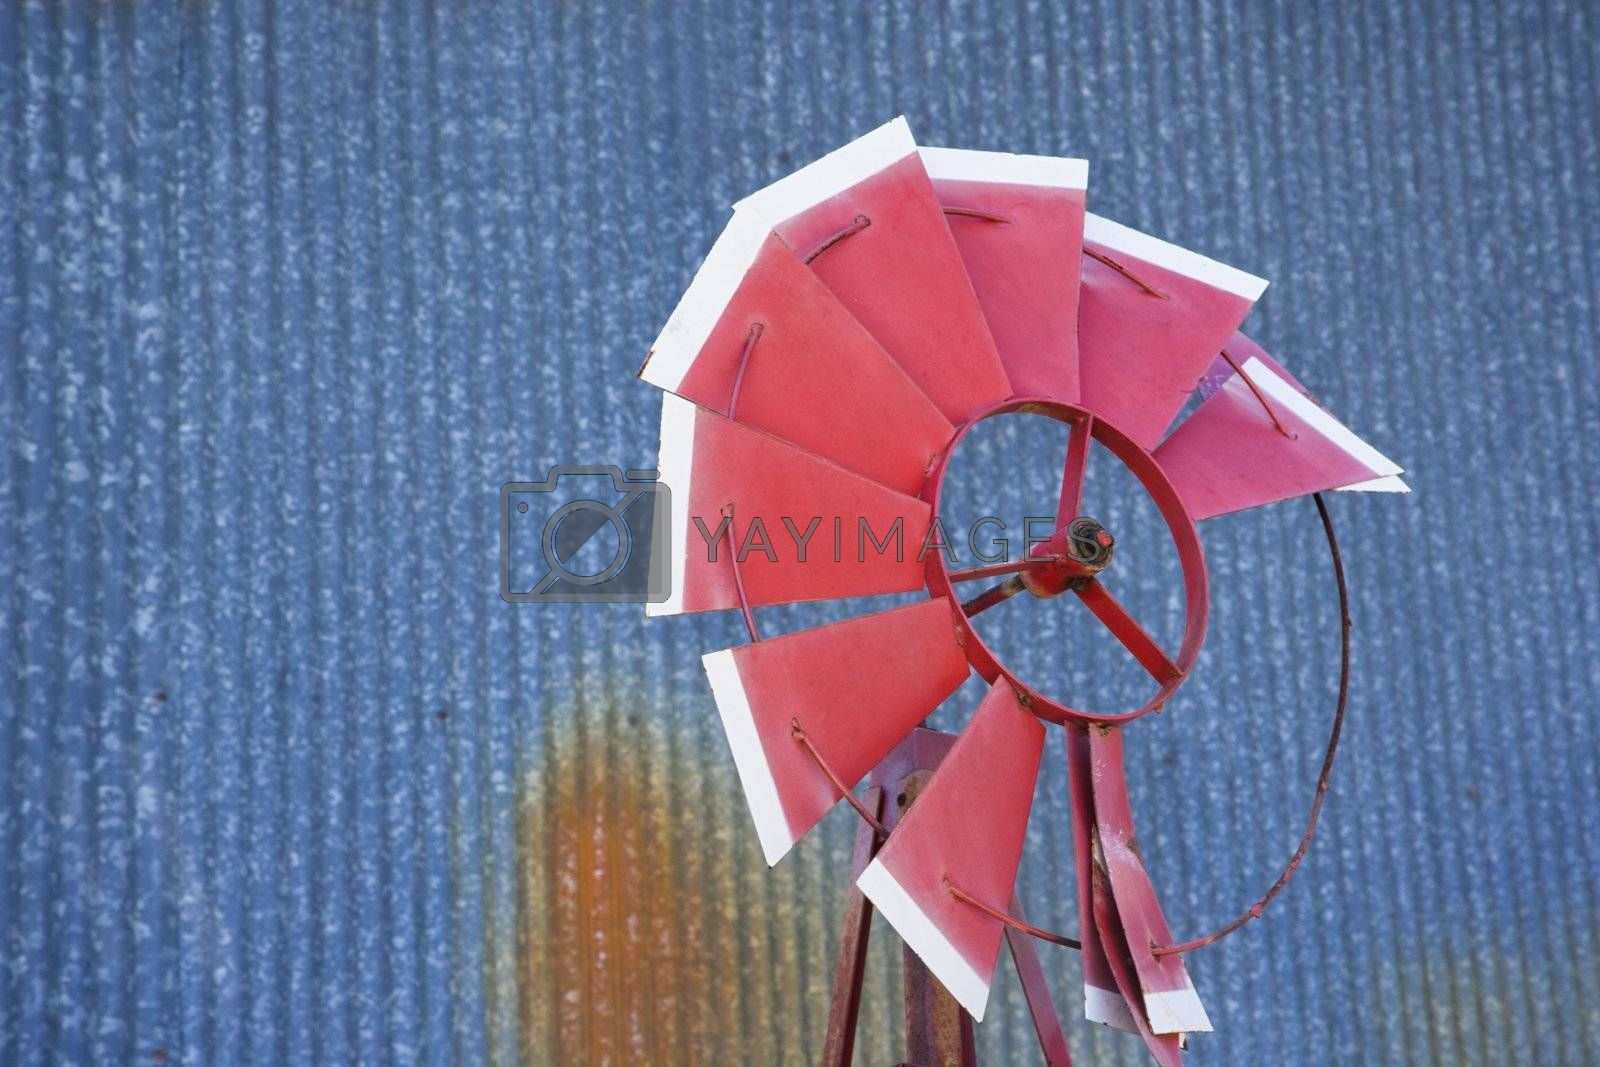 Old red broken windmill against rusted blue corrugated metal building.